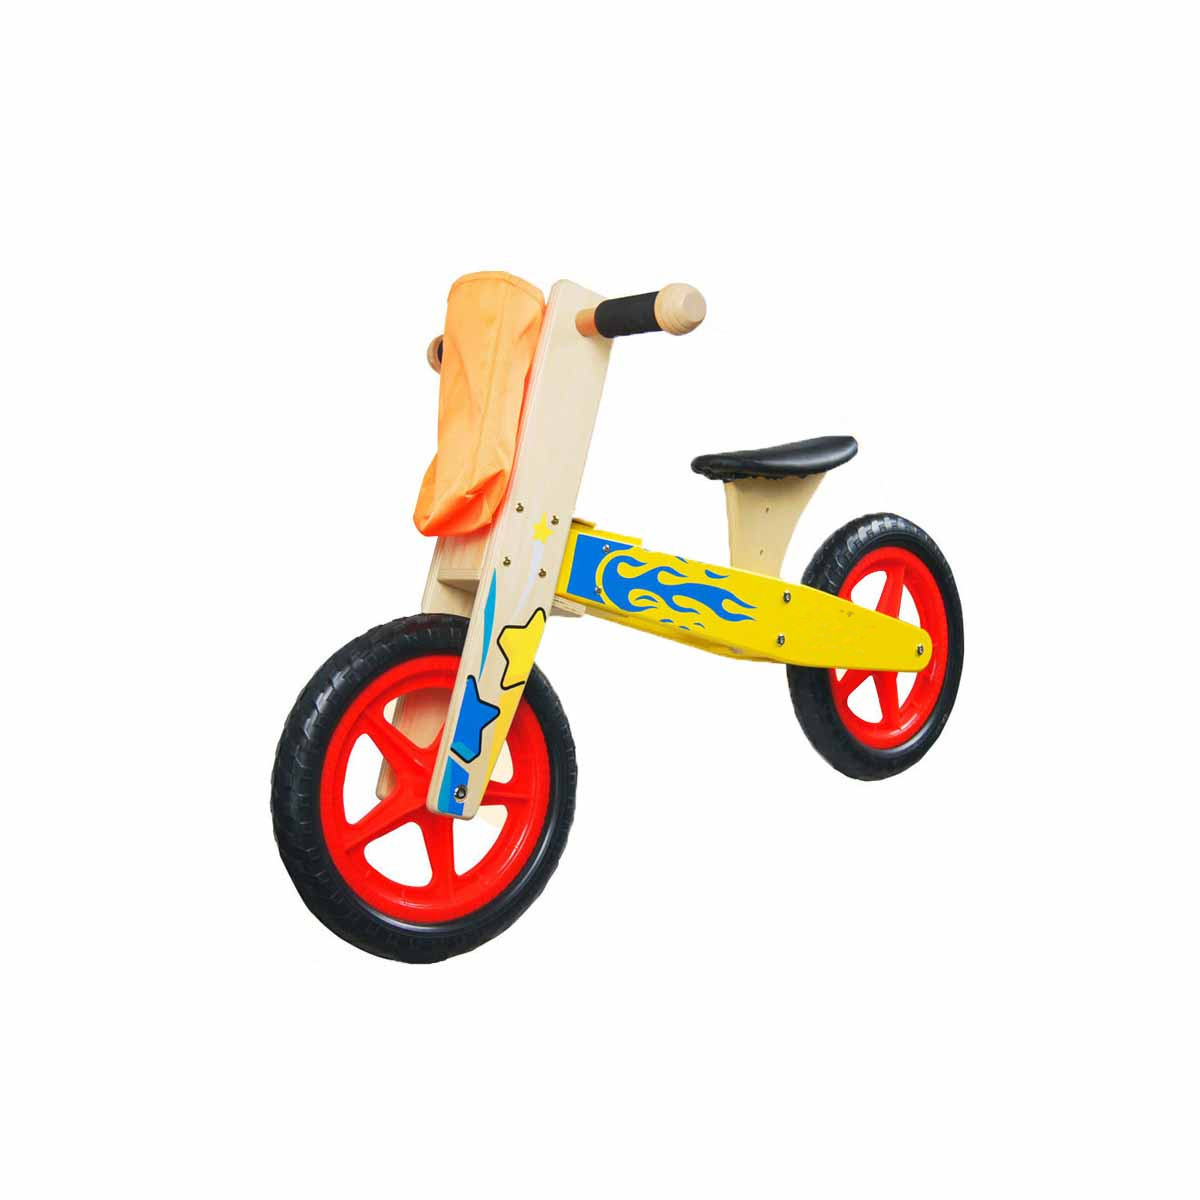 12 Inch Wooden Balance Bike Toddler No Pedals For 1 – 5 Year Old 3